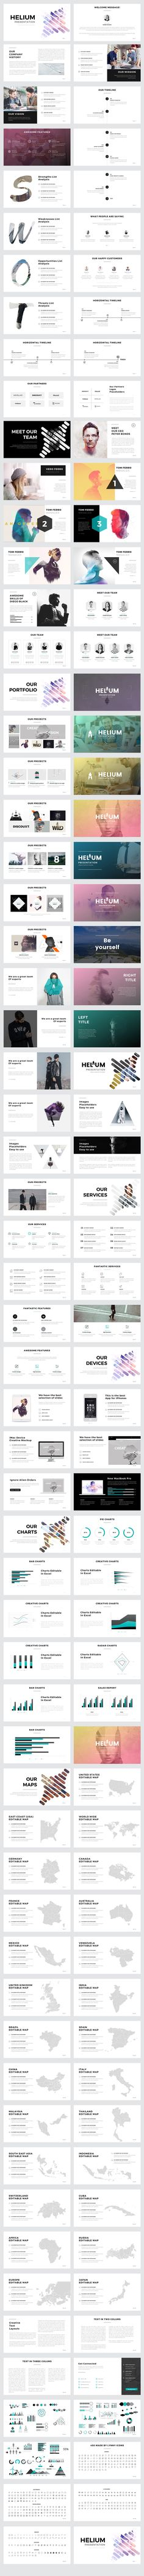 Helium PowerPoint Template by Slidedizer on @creativemarket                                                                                                                                                                                 More